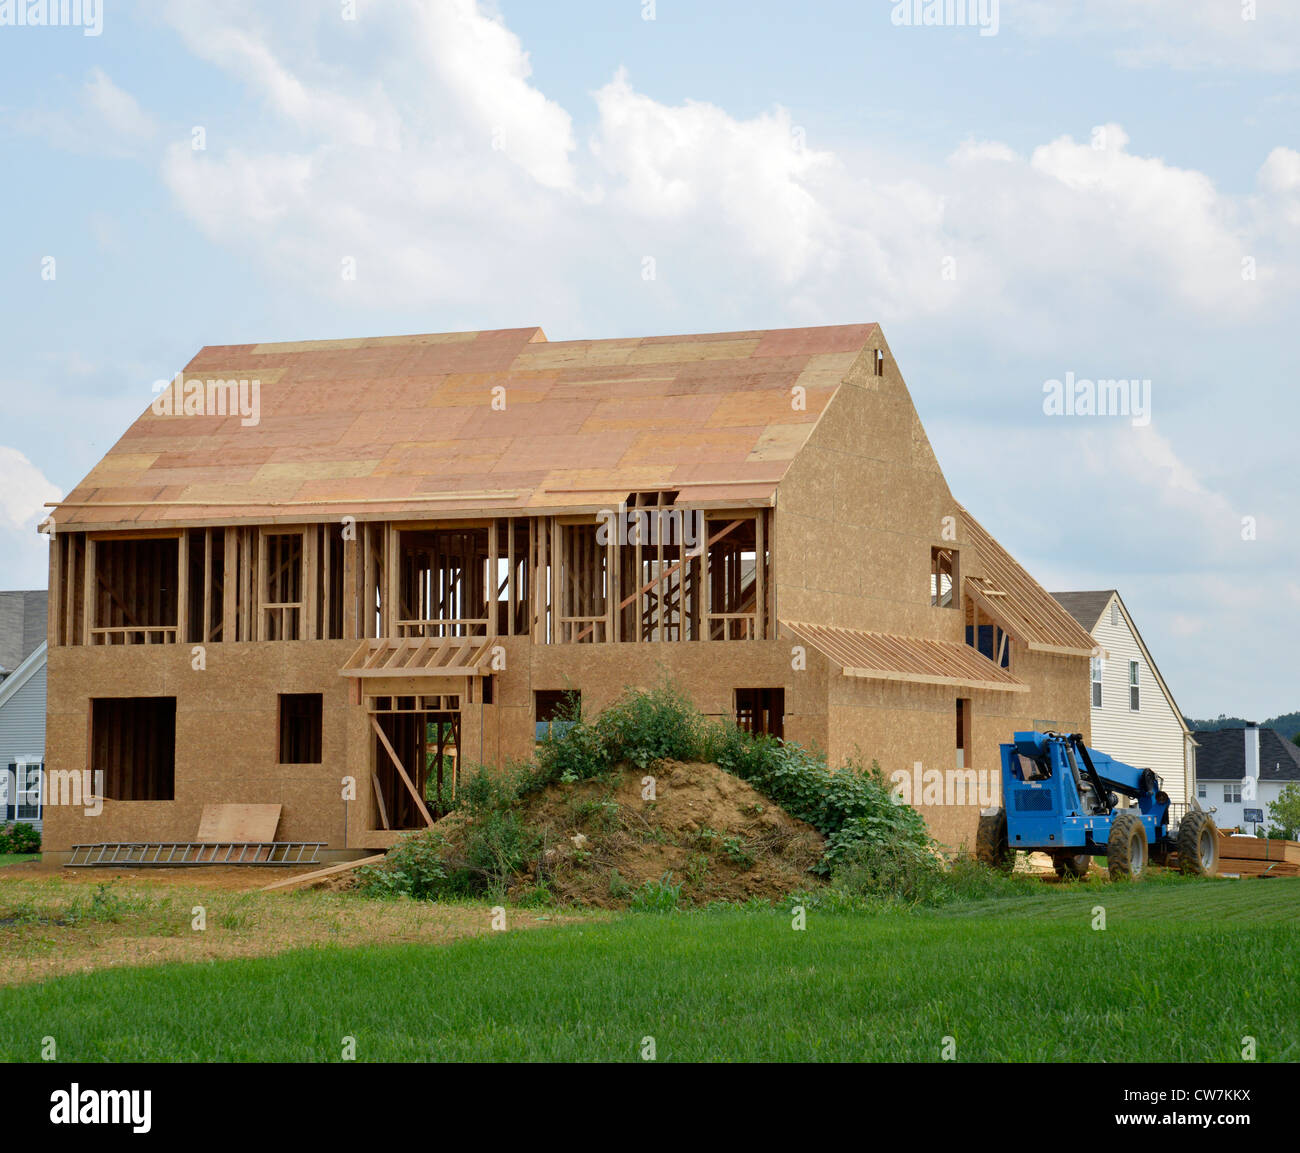 new home under construction - Stock Image